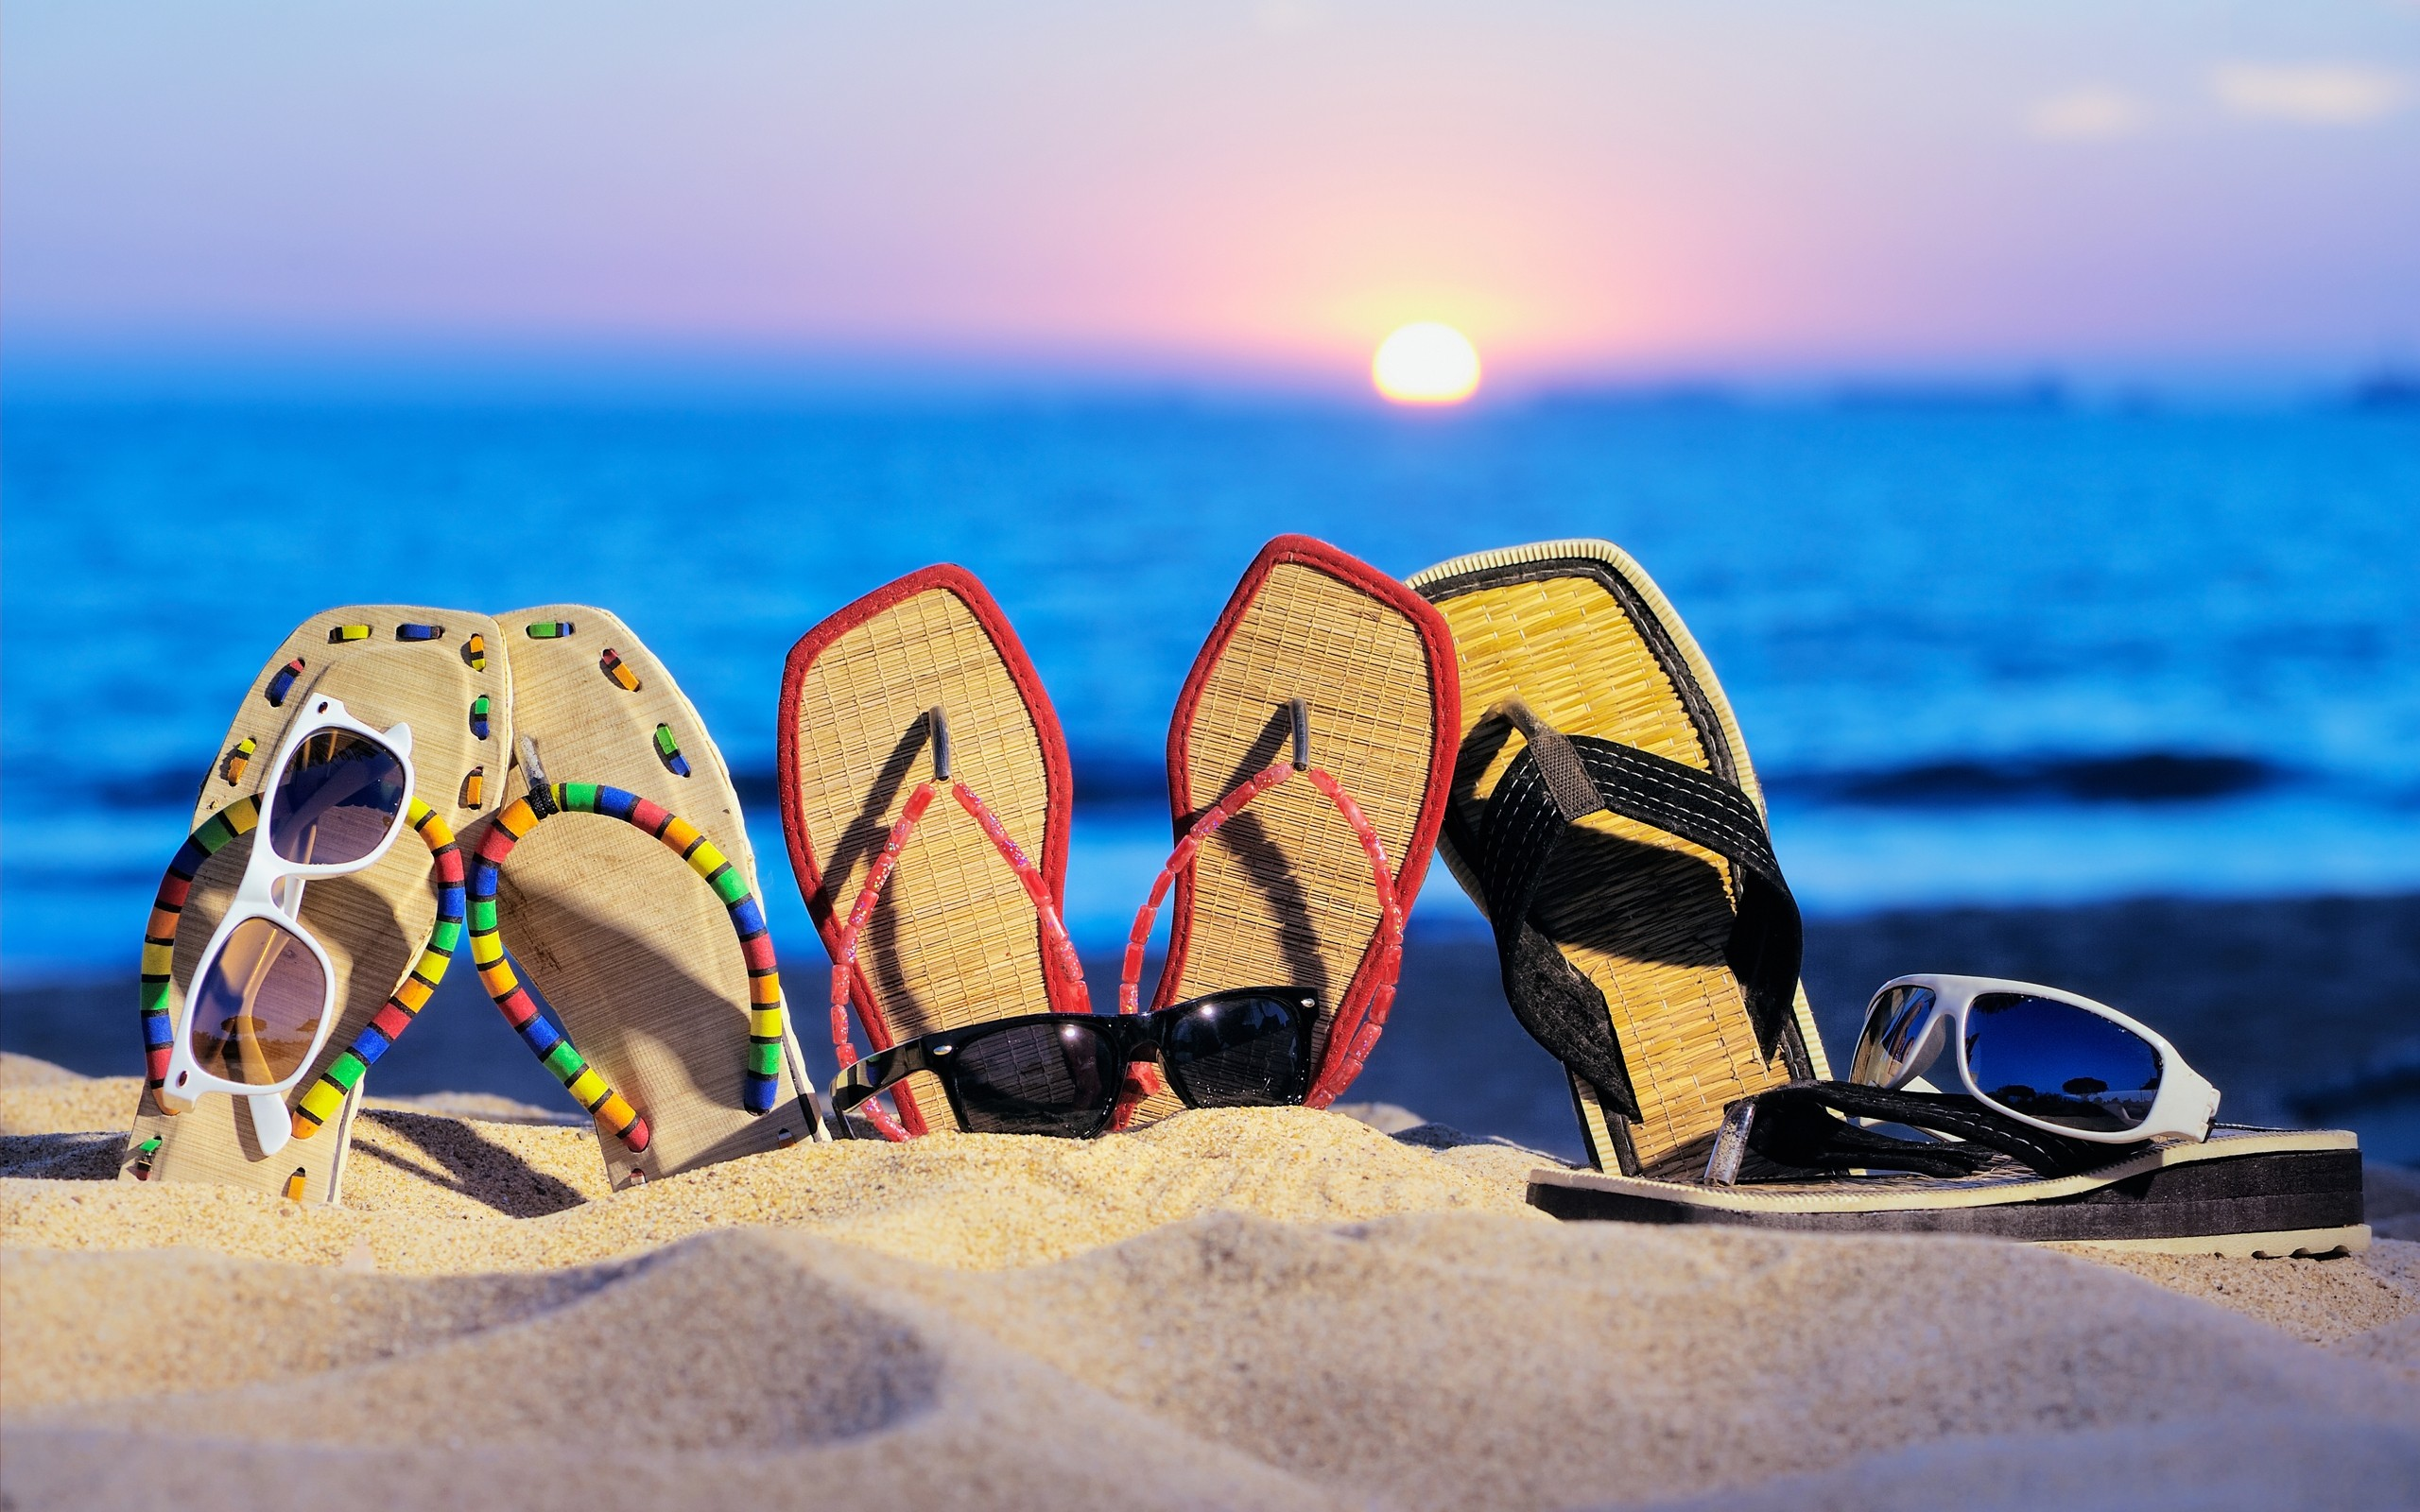 Flip-flops and sunglasses on the beach